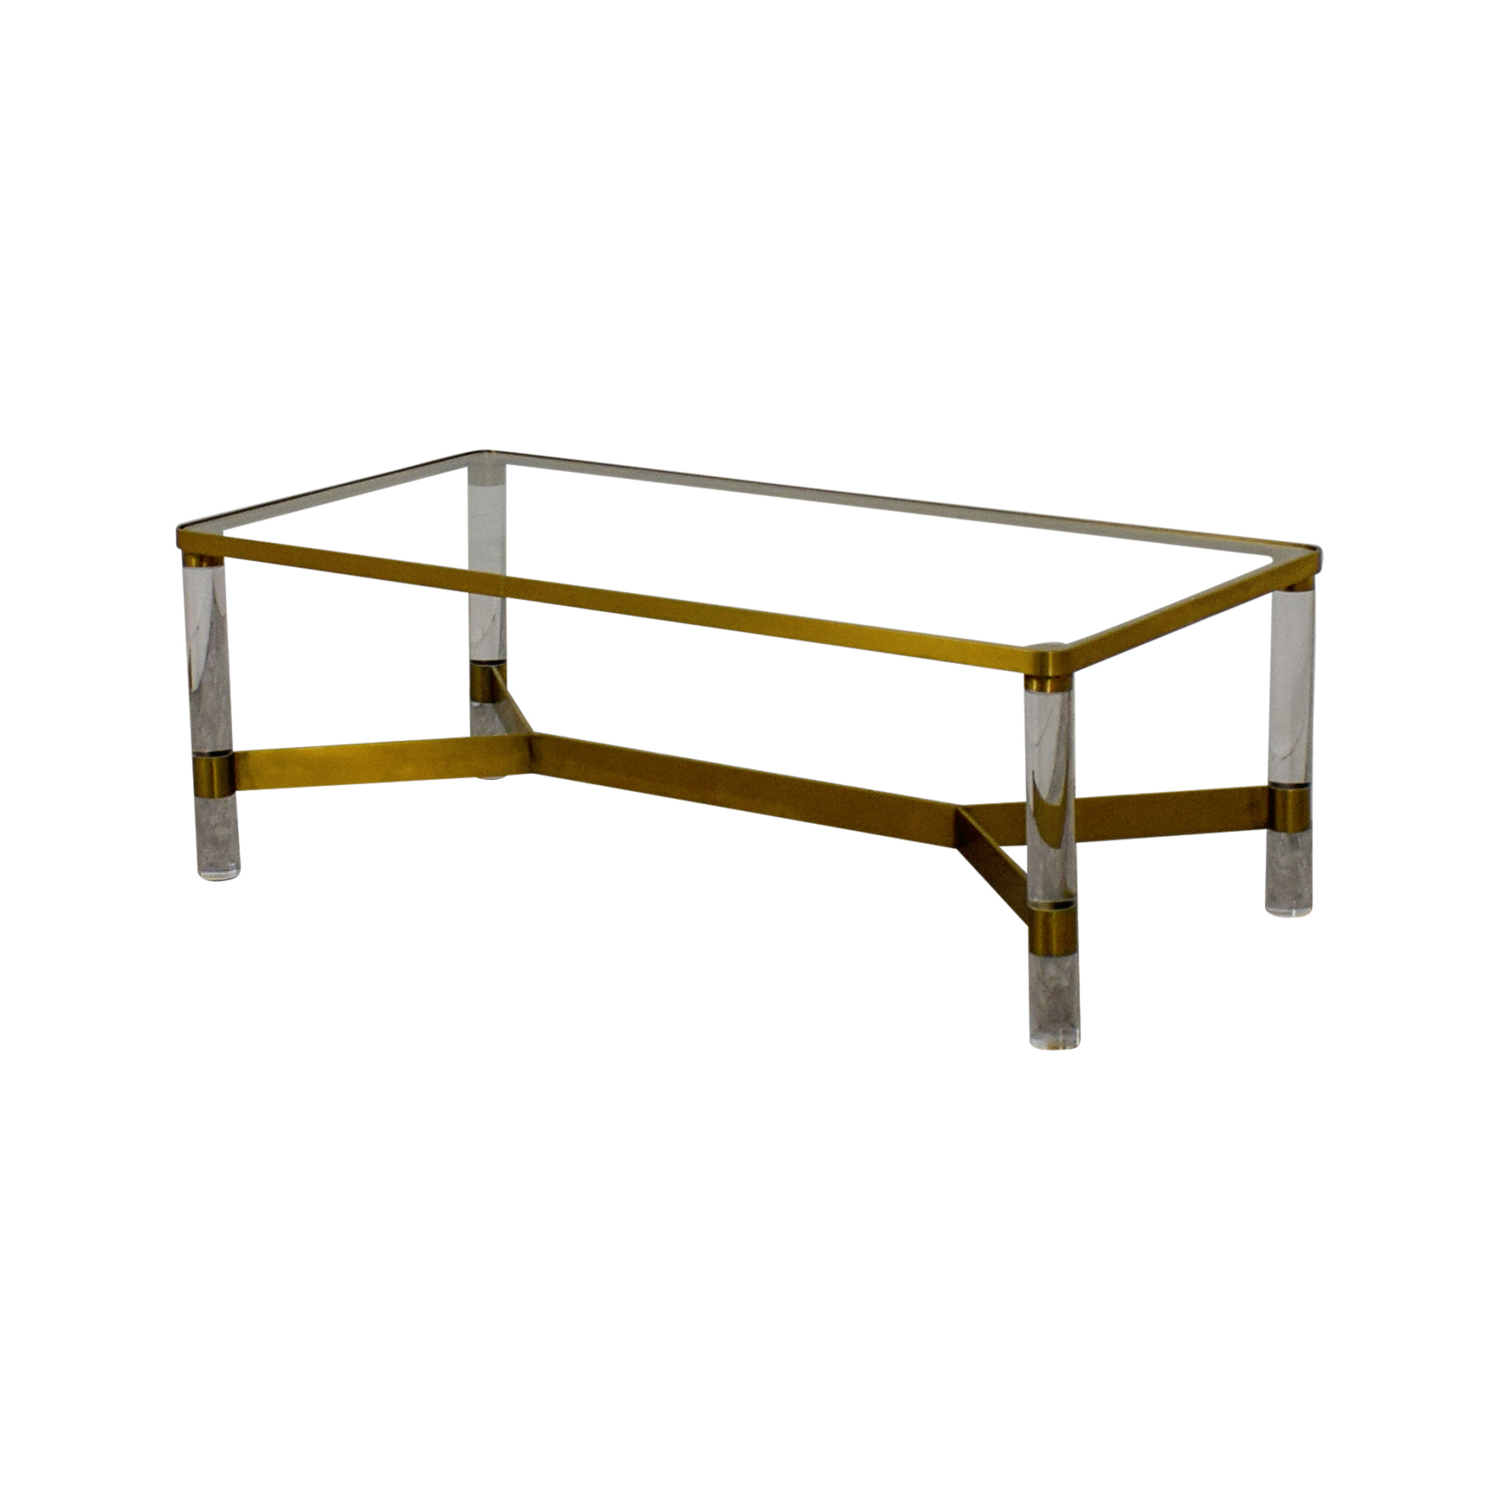 [%72% Off – Anthropologie Anthropologie Oscarine Glass Acrylic & Brass With Well Known Acrylic Glass And Brass Coffee Tables|Acrylic Glass And Brass Coffee Tables Throughout Most Recently Released 72% Off – Anthropologie Anthropologie Oscarine Glass Acrylic & Brass|Well Known Acrylic Glass And Brass Coffee Tables Inside 72% Off – Anthropologie Anthropologie Oscarine Glass Acrylic & Brass|Preferred 72% Off – Anthropologie Anthropologie Oscarine Glass Acrylic & Brass Pertaining To Acrylic Glass And Brass Coffee Tables%] (View 17 of 20)